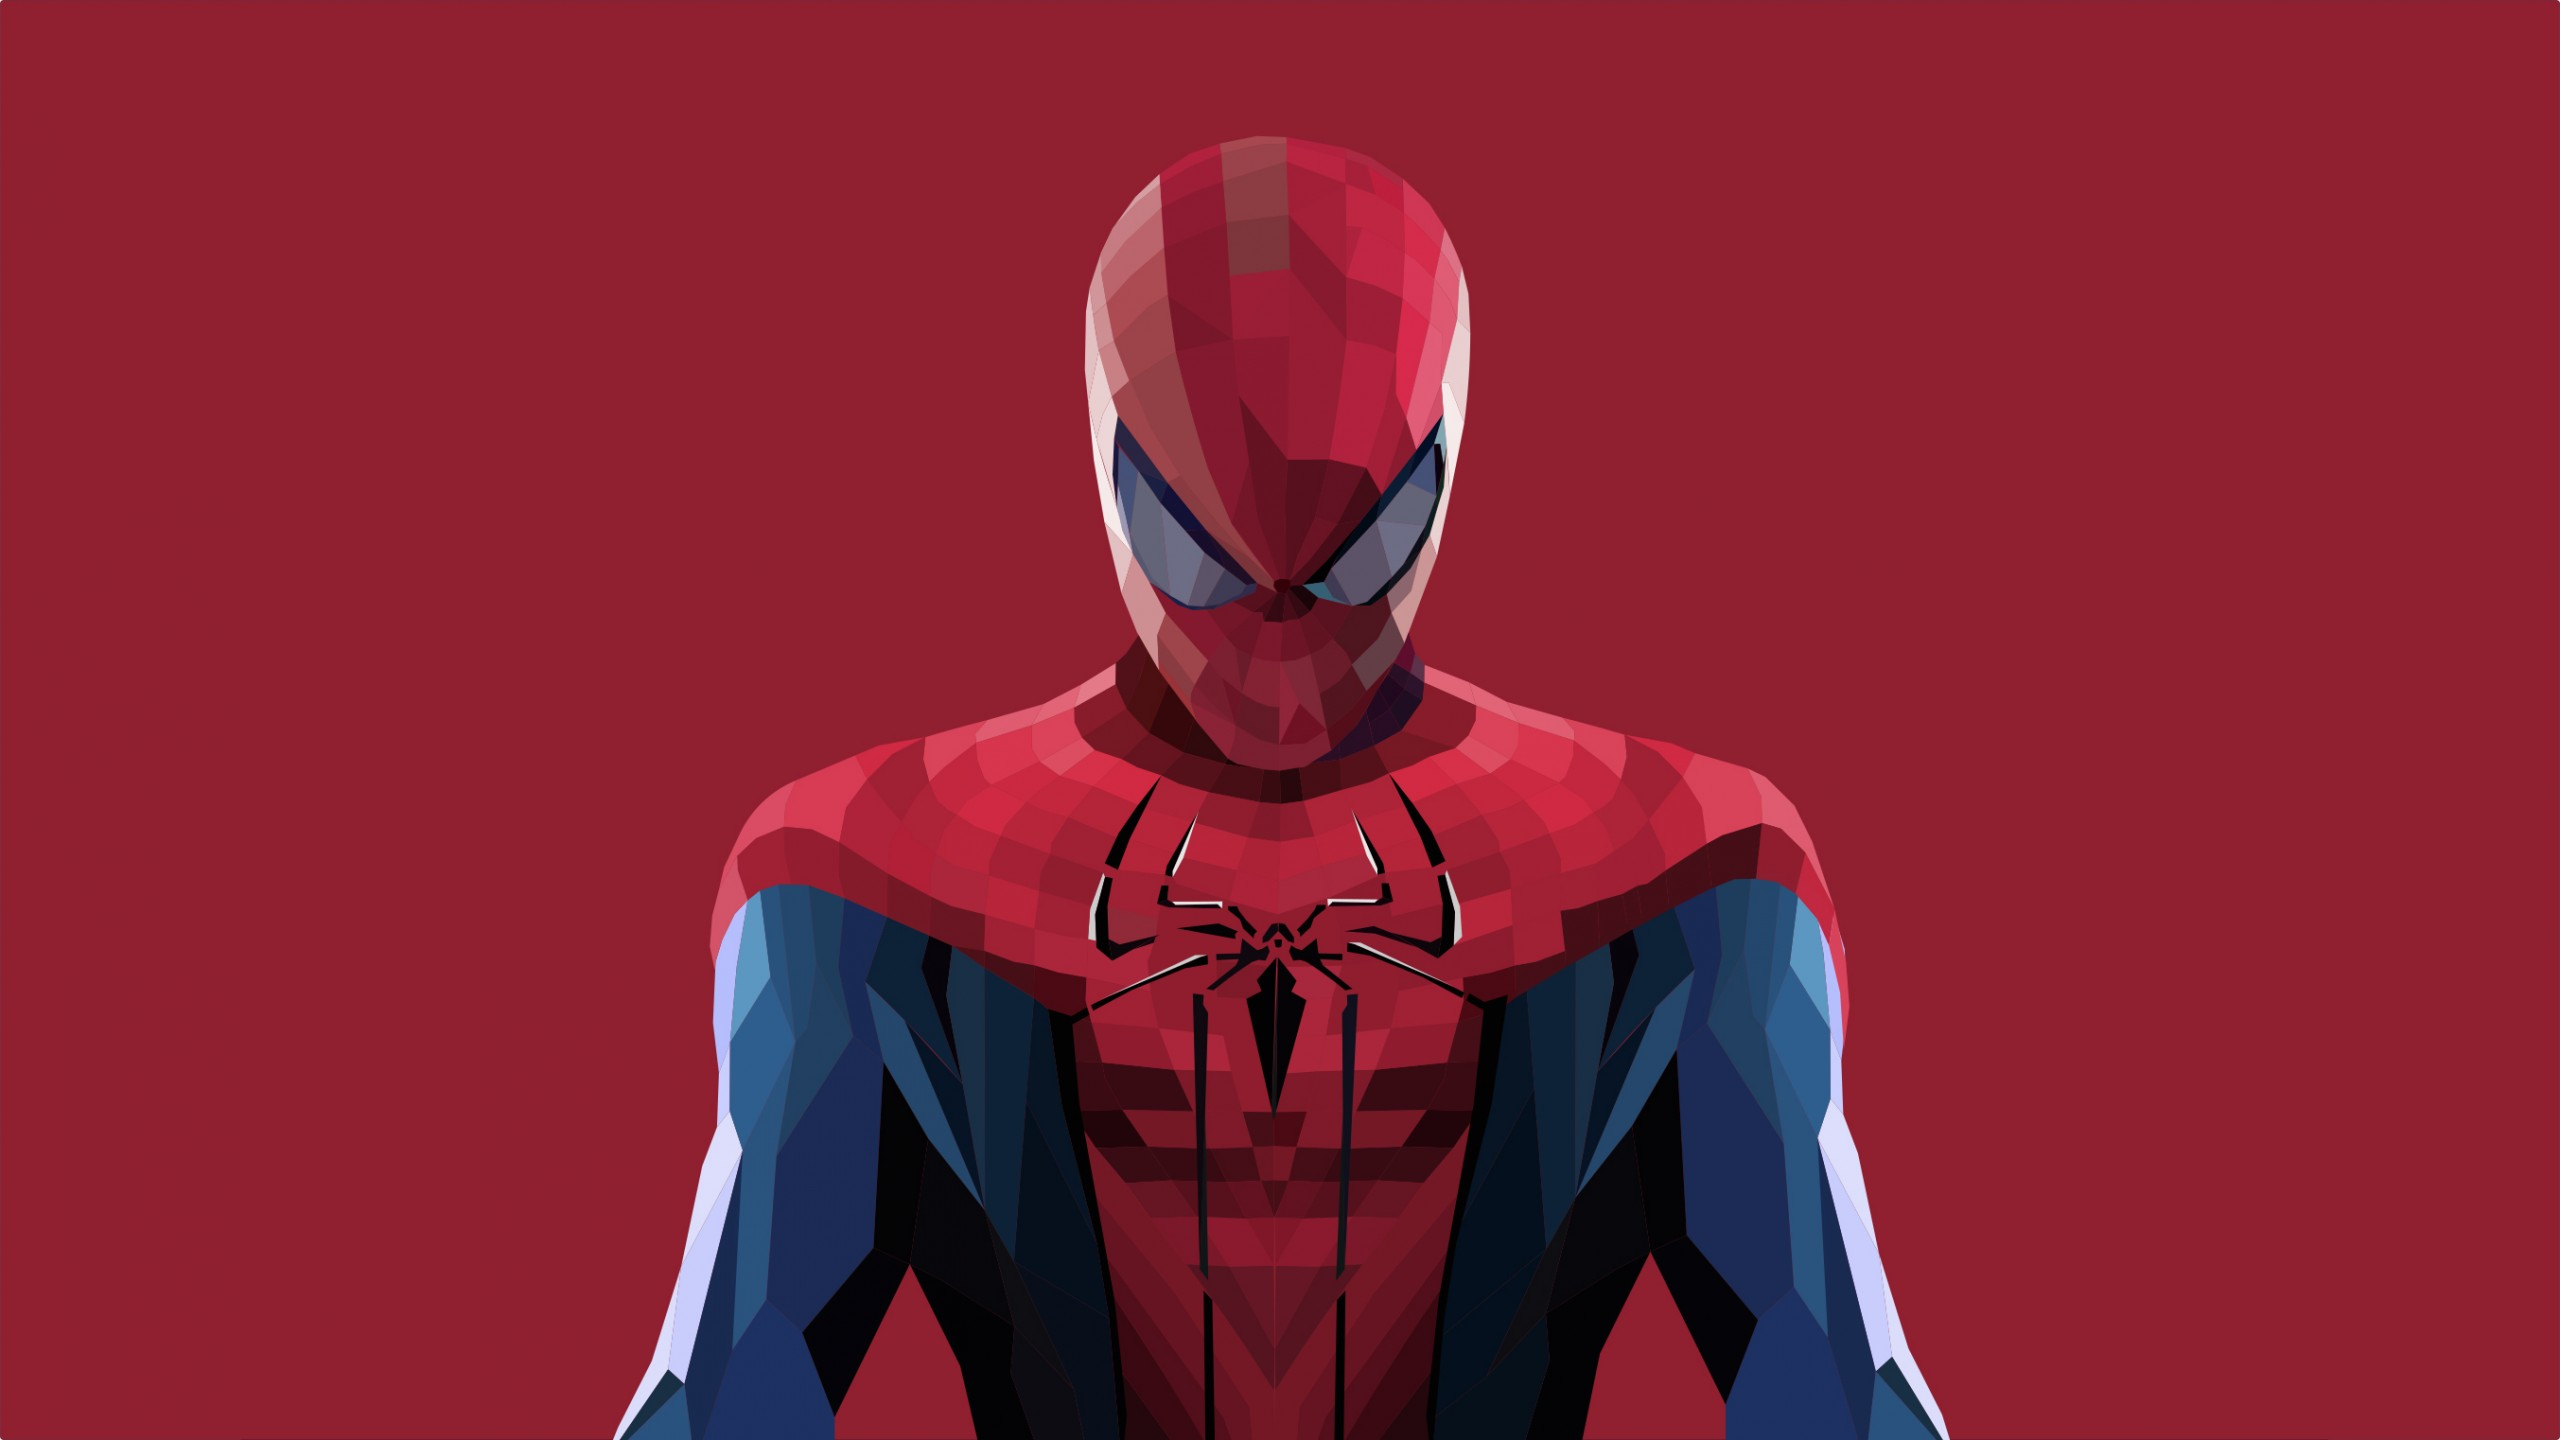 Naruto Shippuden Iphone Wallpaper Spider Man Lowpoly Art Wallpapers Hd Wallpapers Id 27209